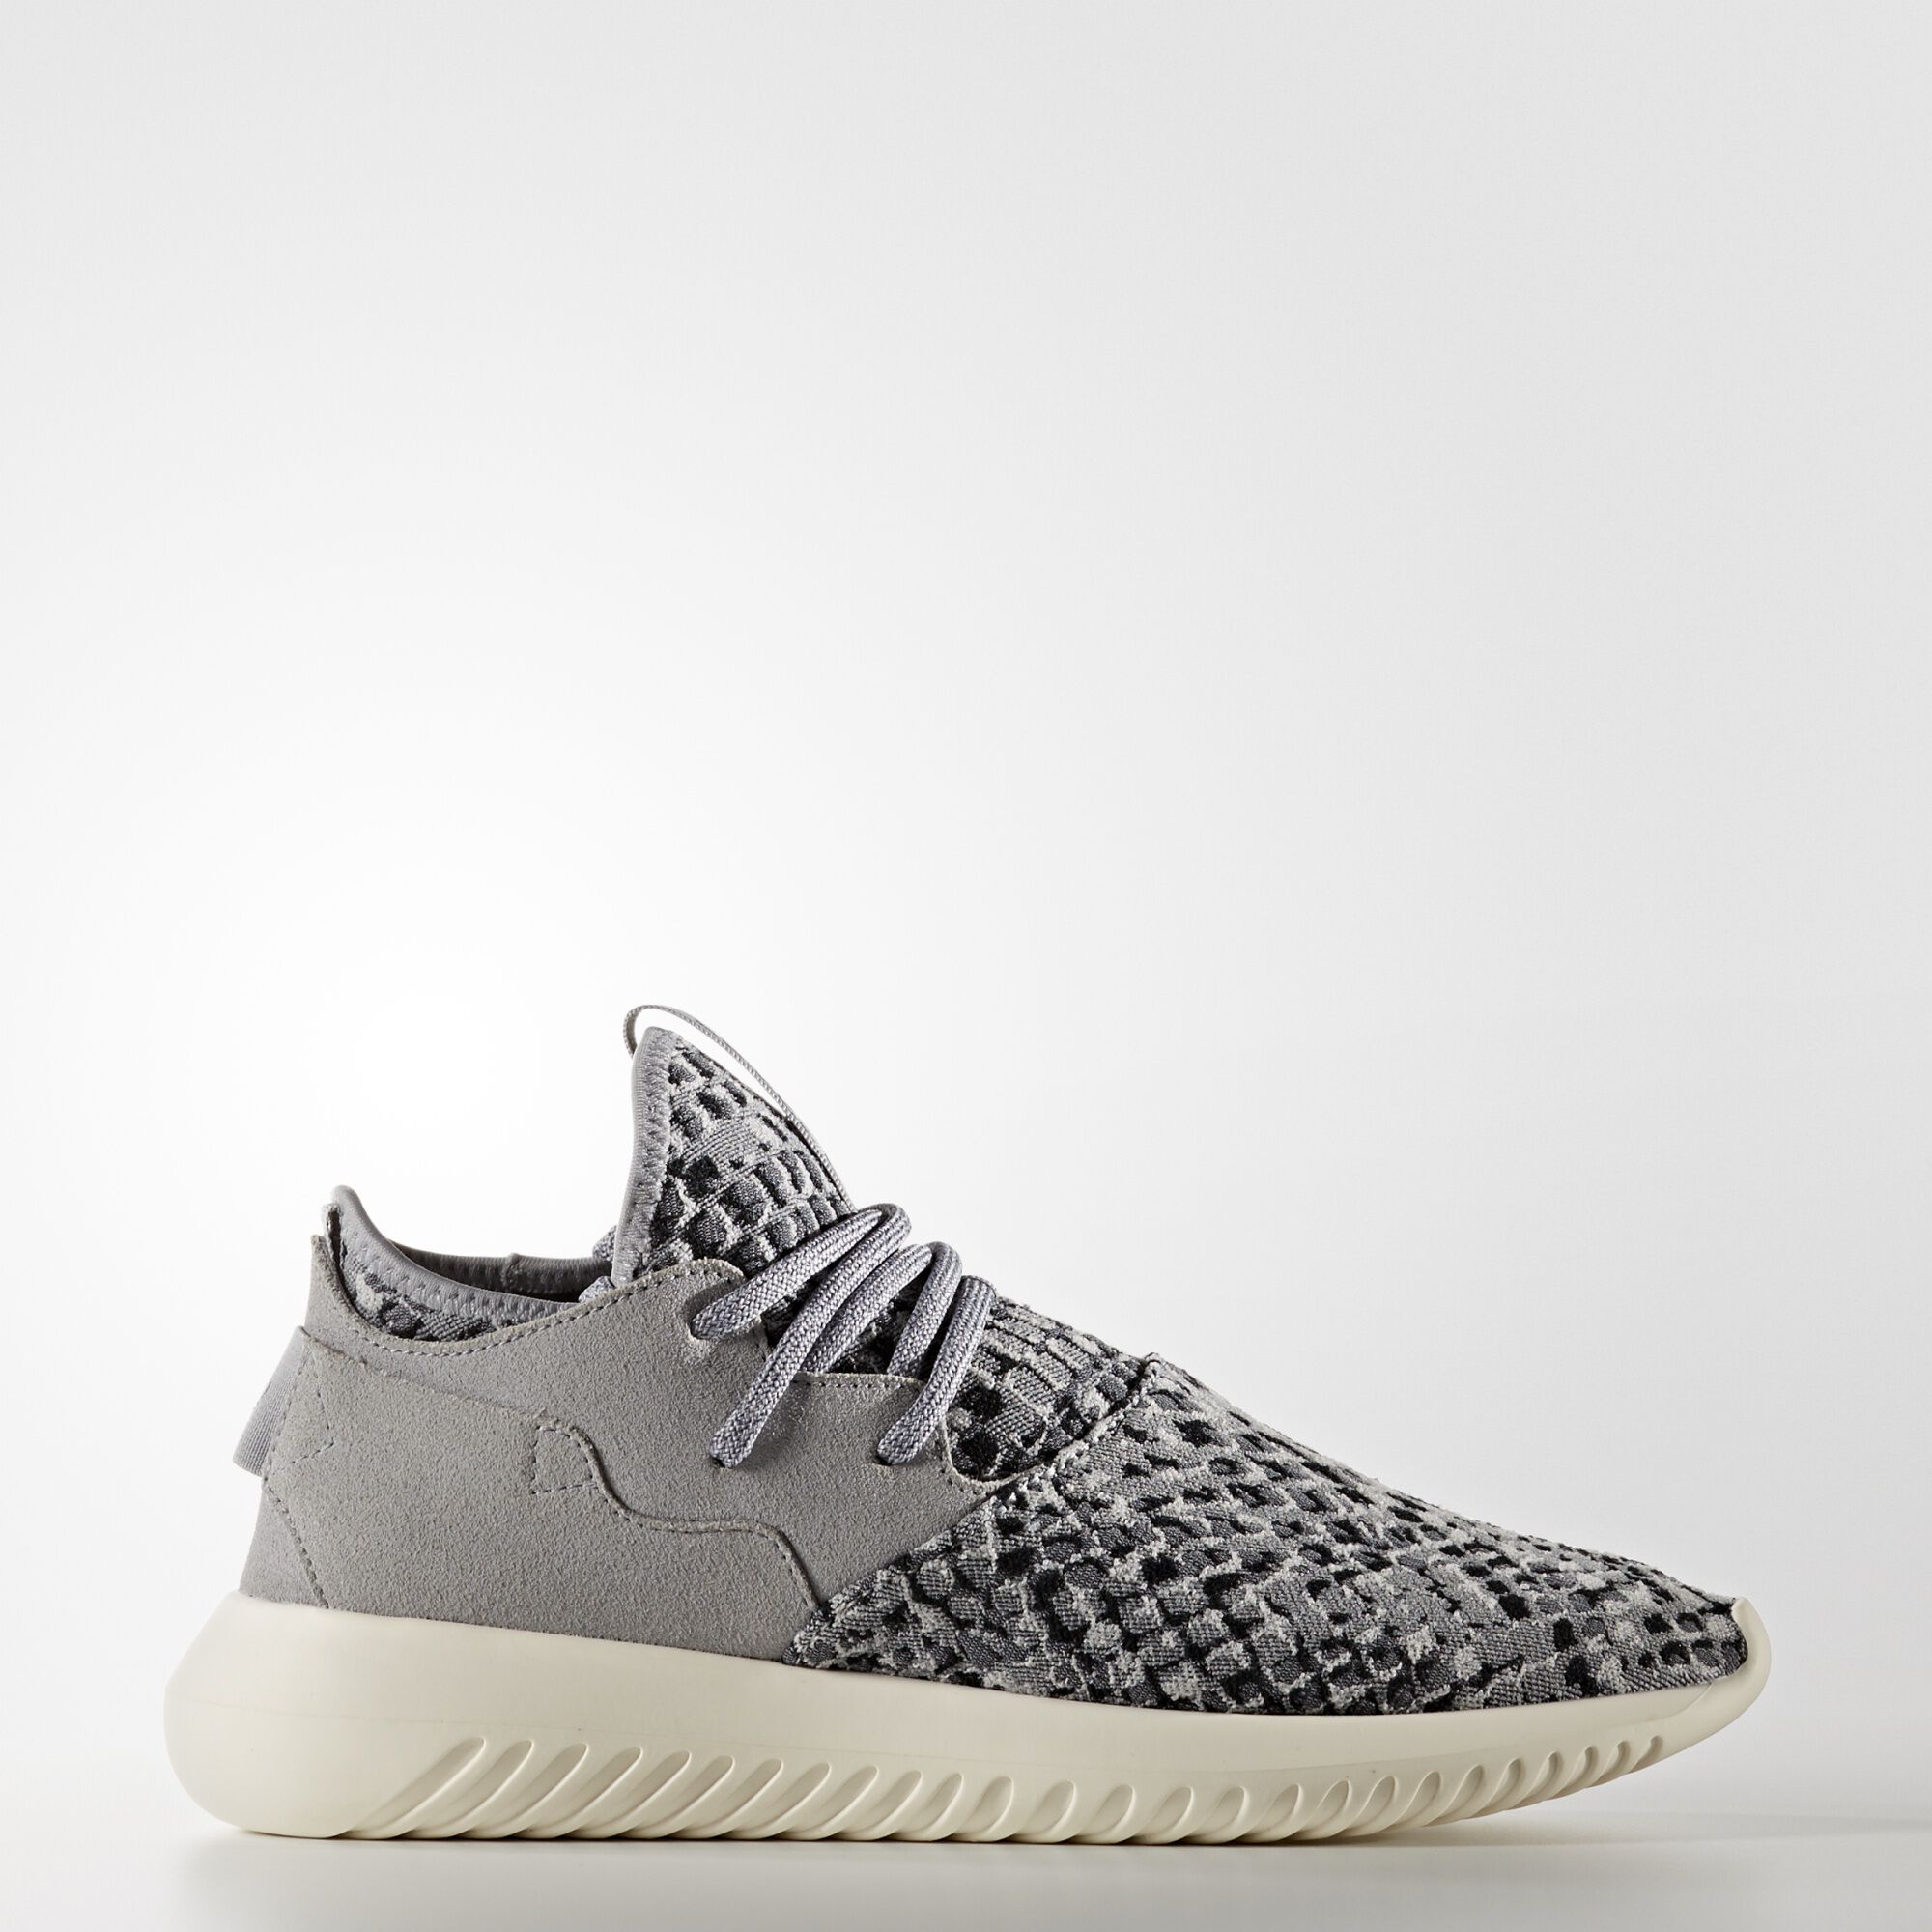 Adidas Tubular Shadow Shoes White adidas UK